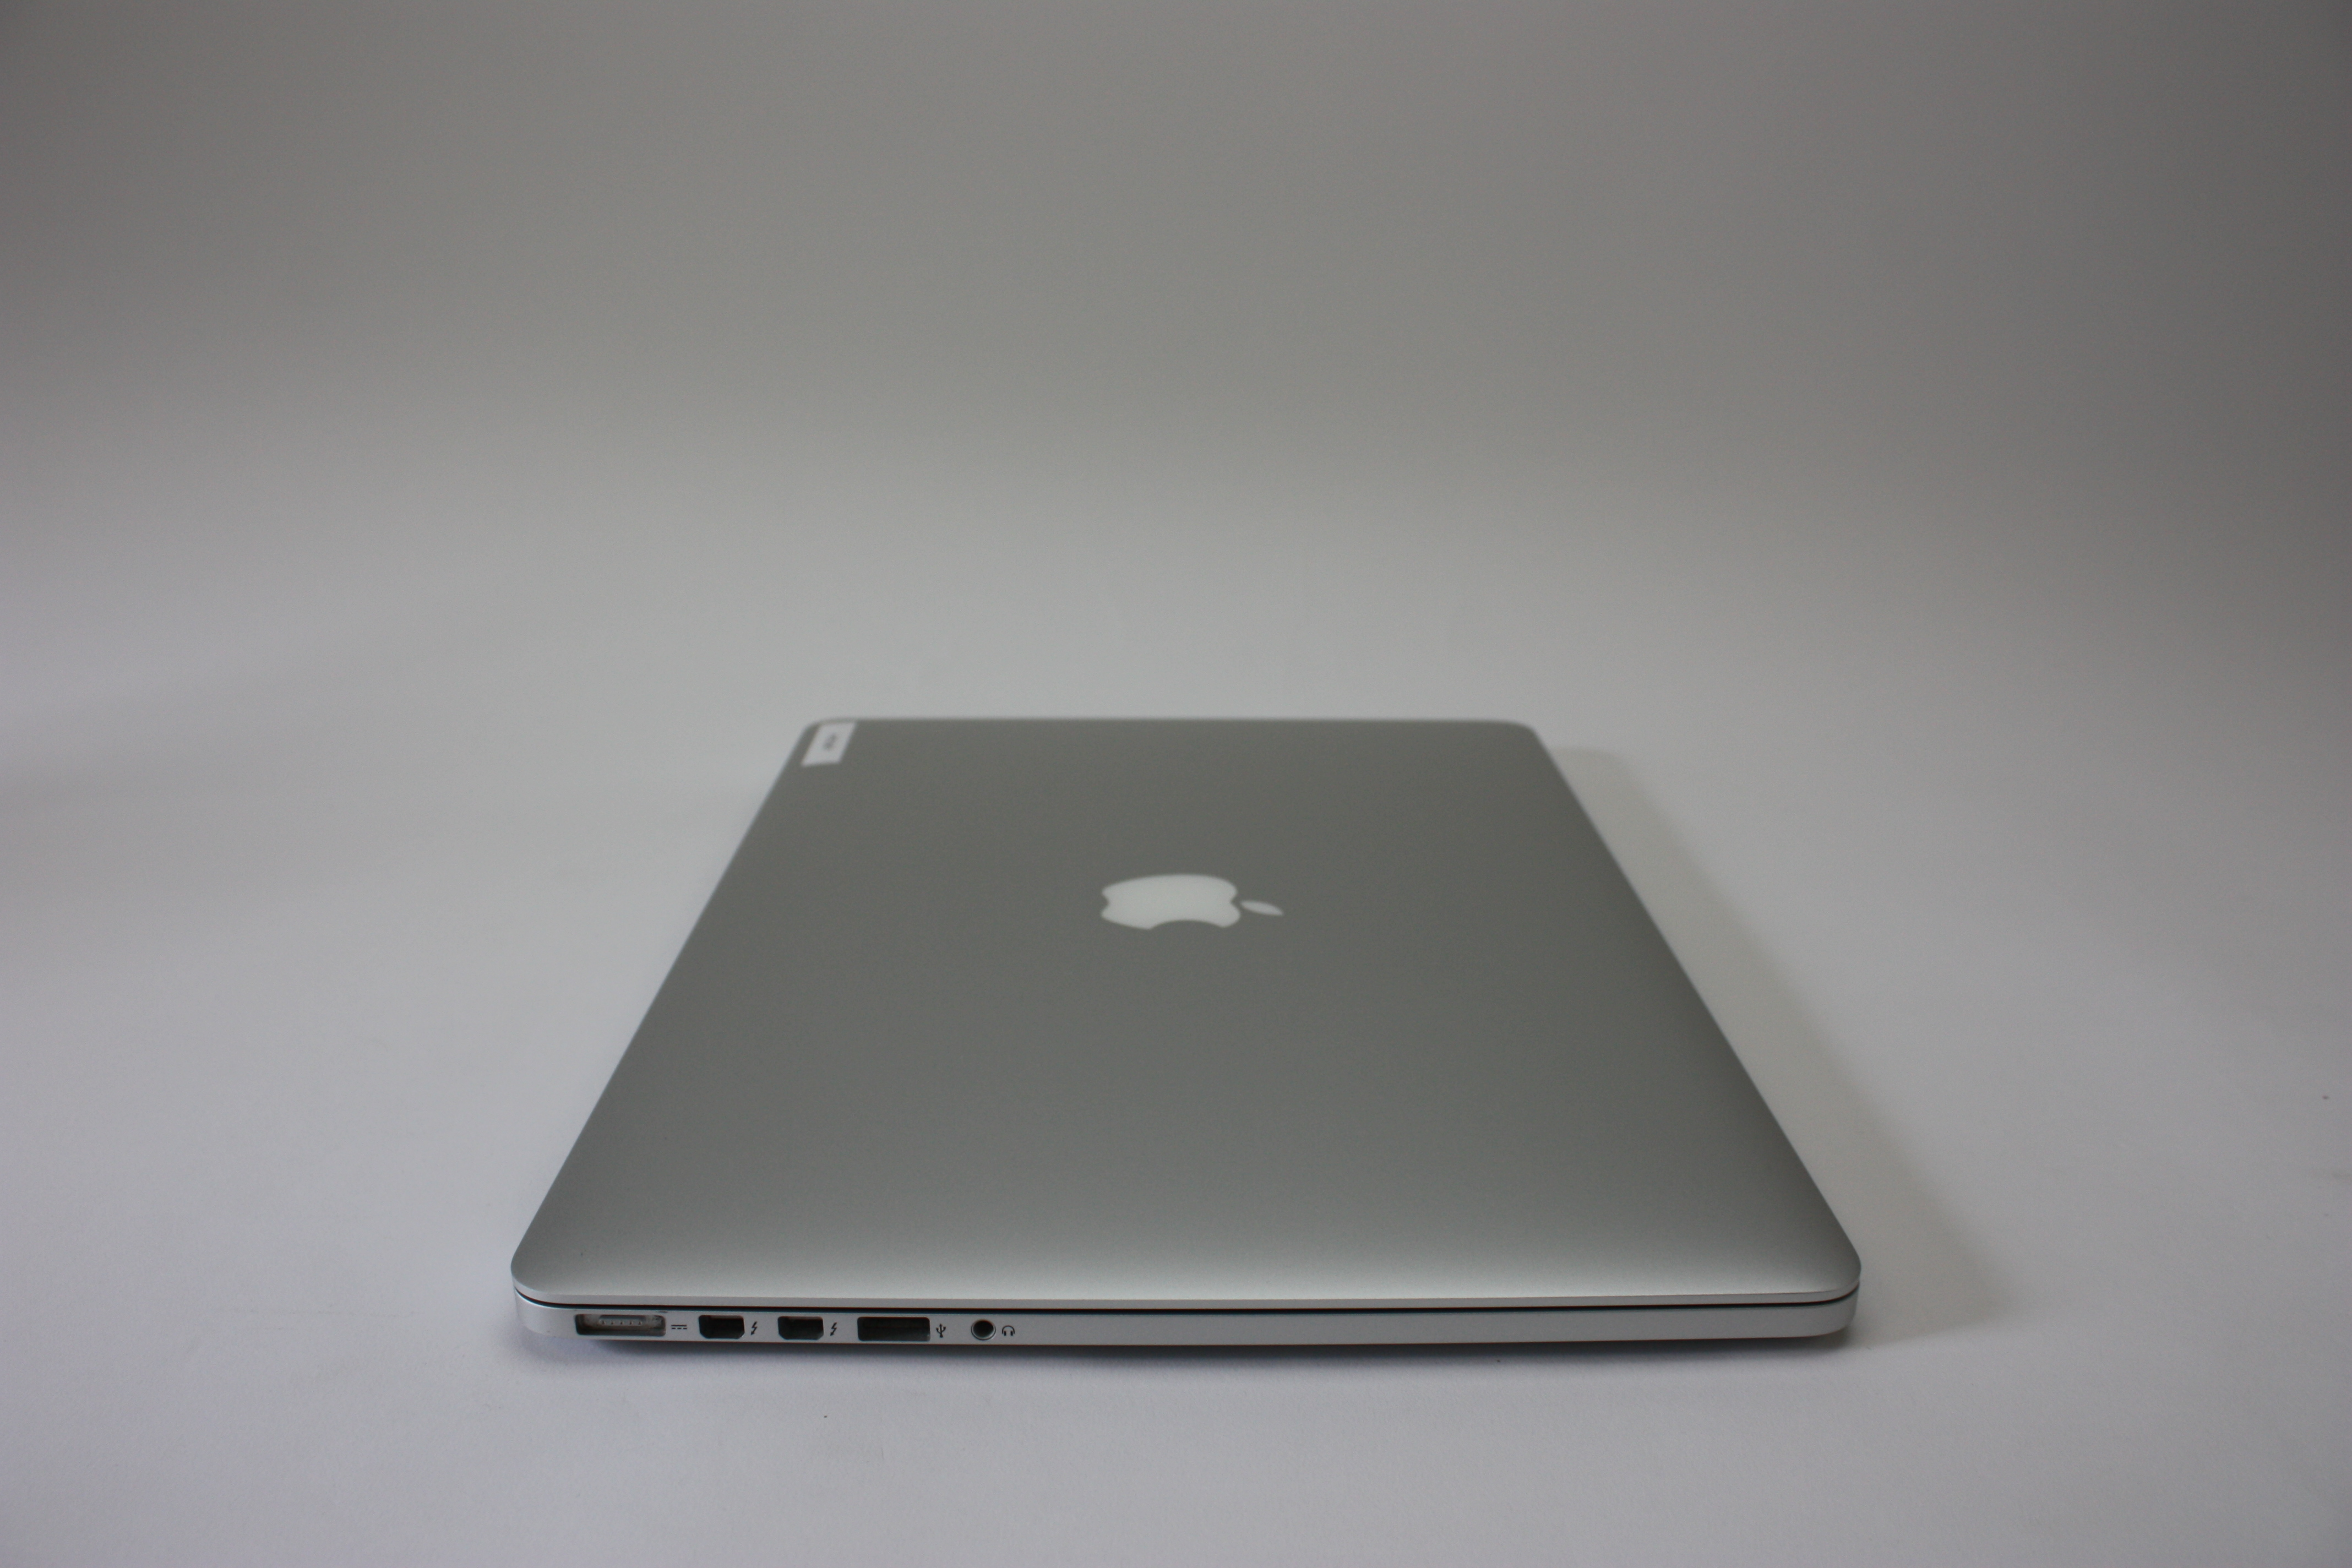 MacBook Pro 15-inch Retina, 2.3 GHz Core i7 (I7-3615QM), 8 GB 1600 MHz DDR3, 480 Solid State SATA Drive, Product age: 72 months, image 5